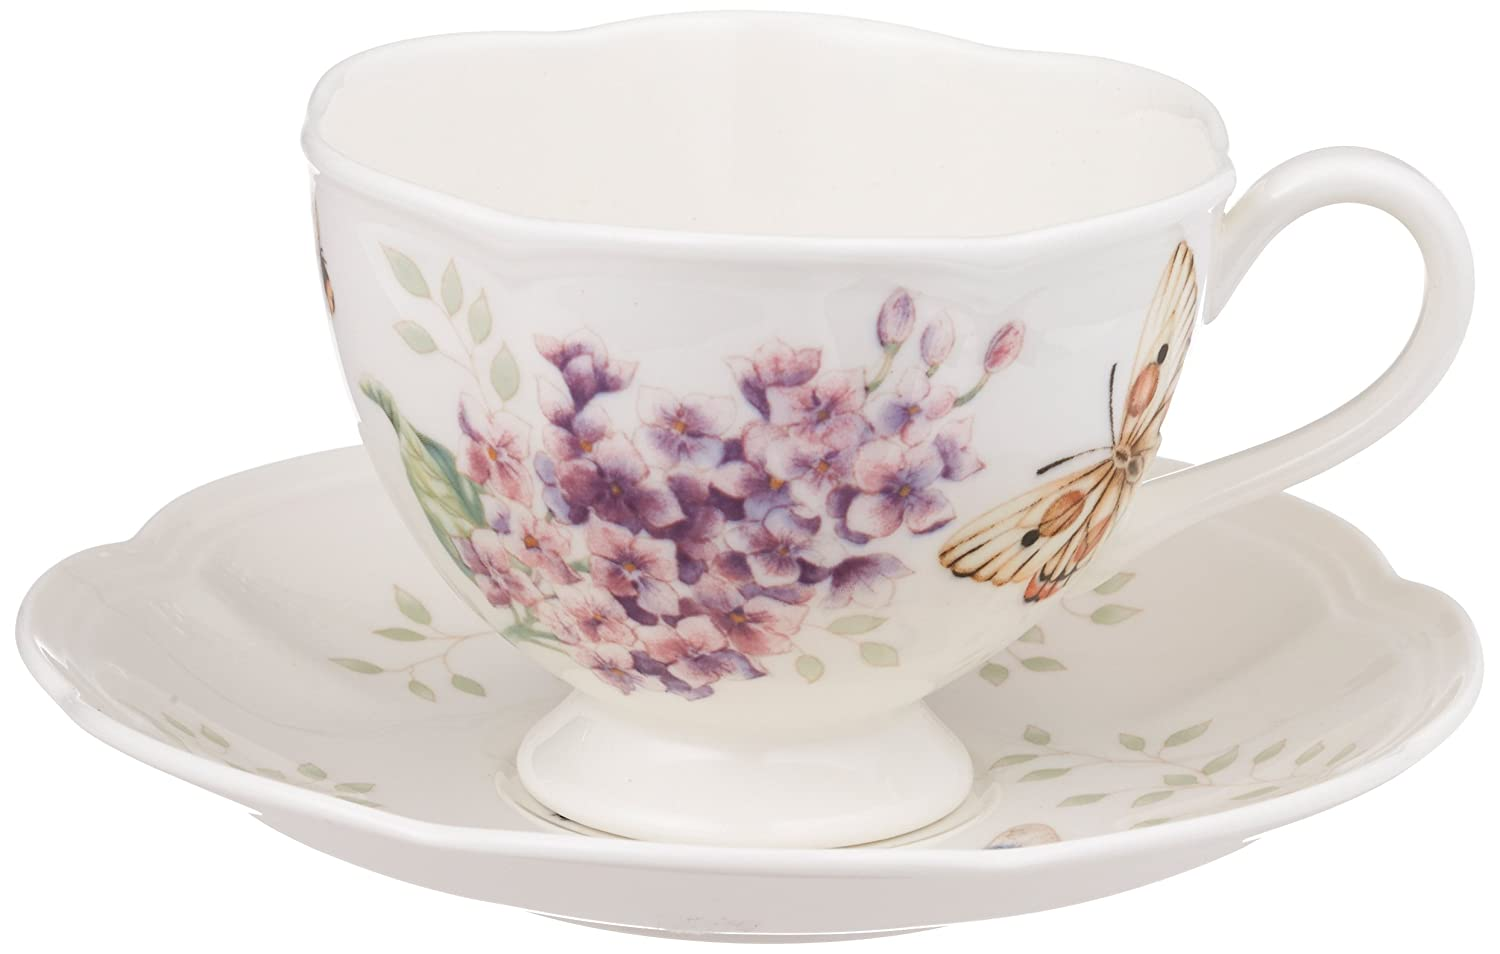 Lenox Butterfly Meadow Orange Sulphur 8-Ounce Cup and Saucer Set - 812105